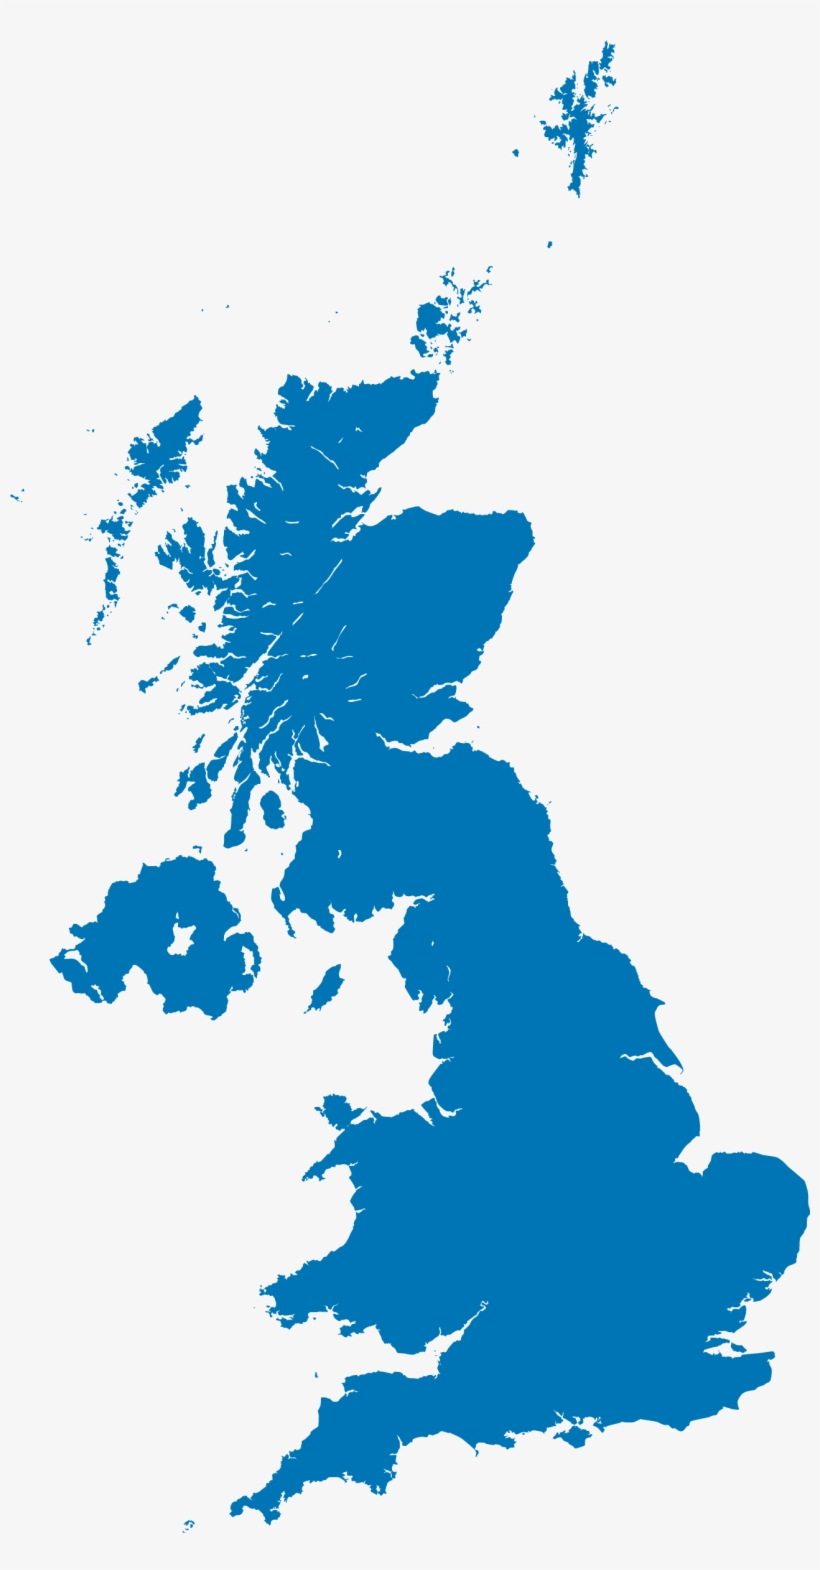 Map Of Uk Oxford.Interactive Map Oxford On Uk Map Free Transparent Png Download